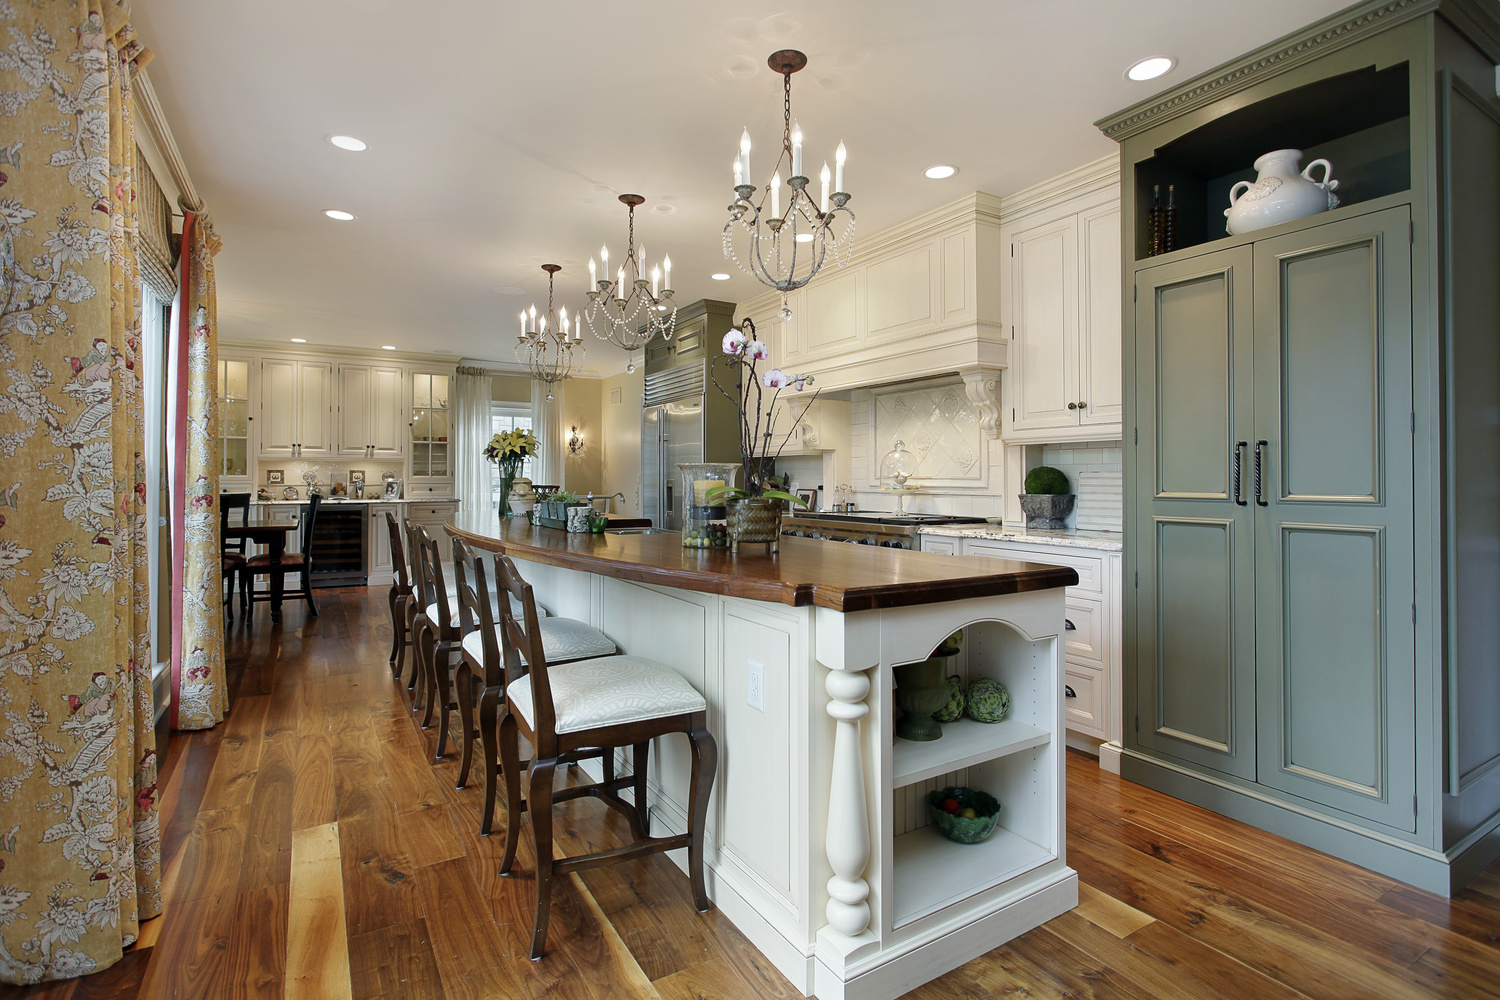 kitchens and dining rooms — new orleans interior designer|new